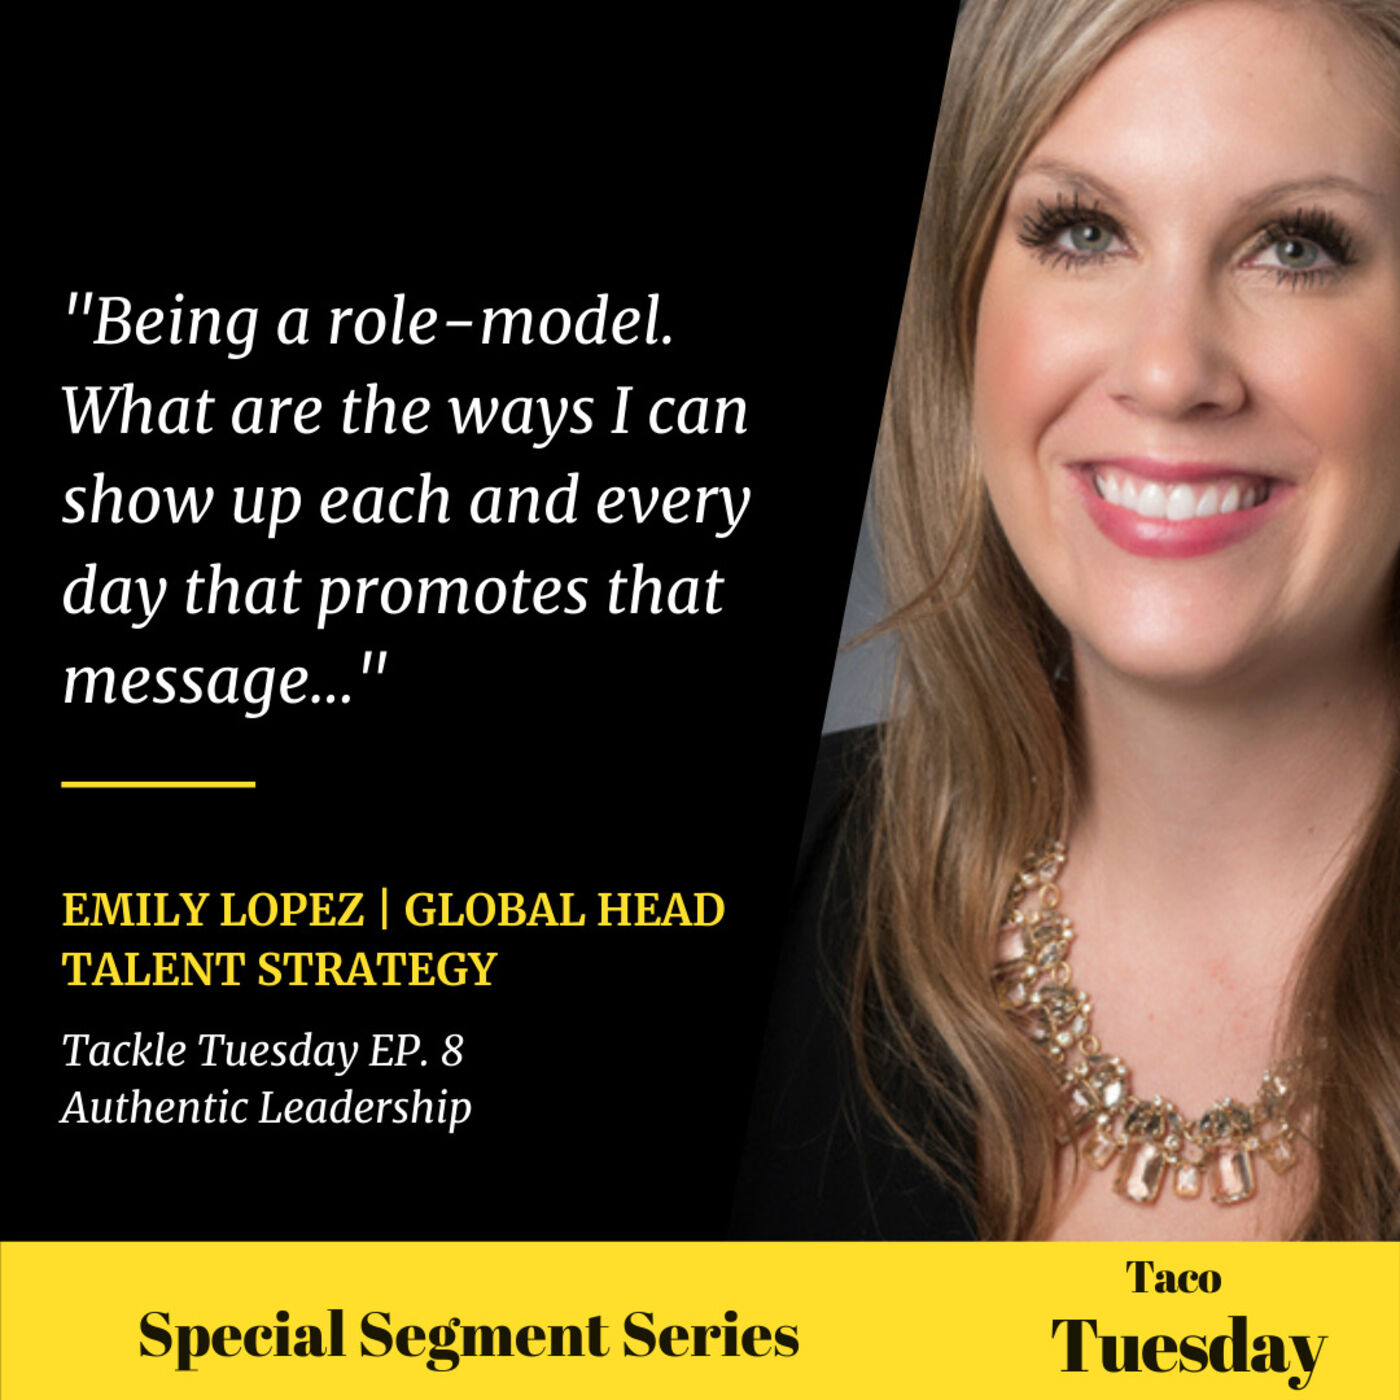 Special Segment Taco Tuesday: Ep. 8 Authentic Leadership